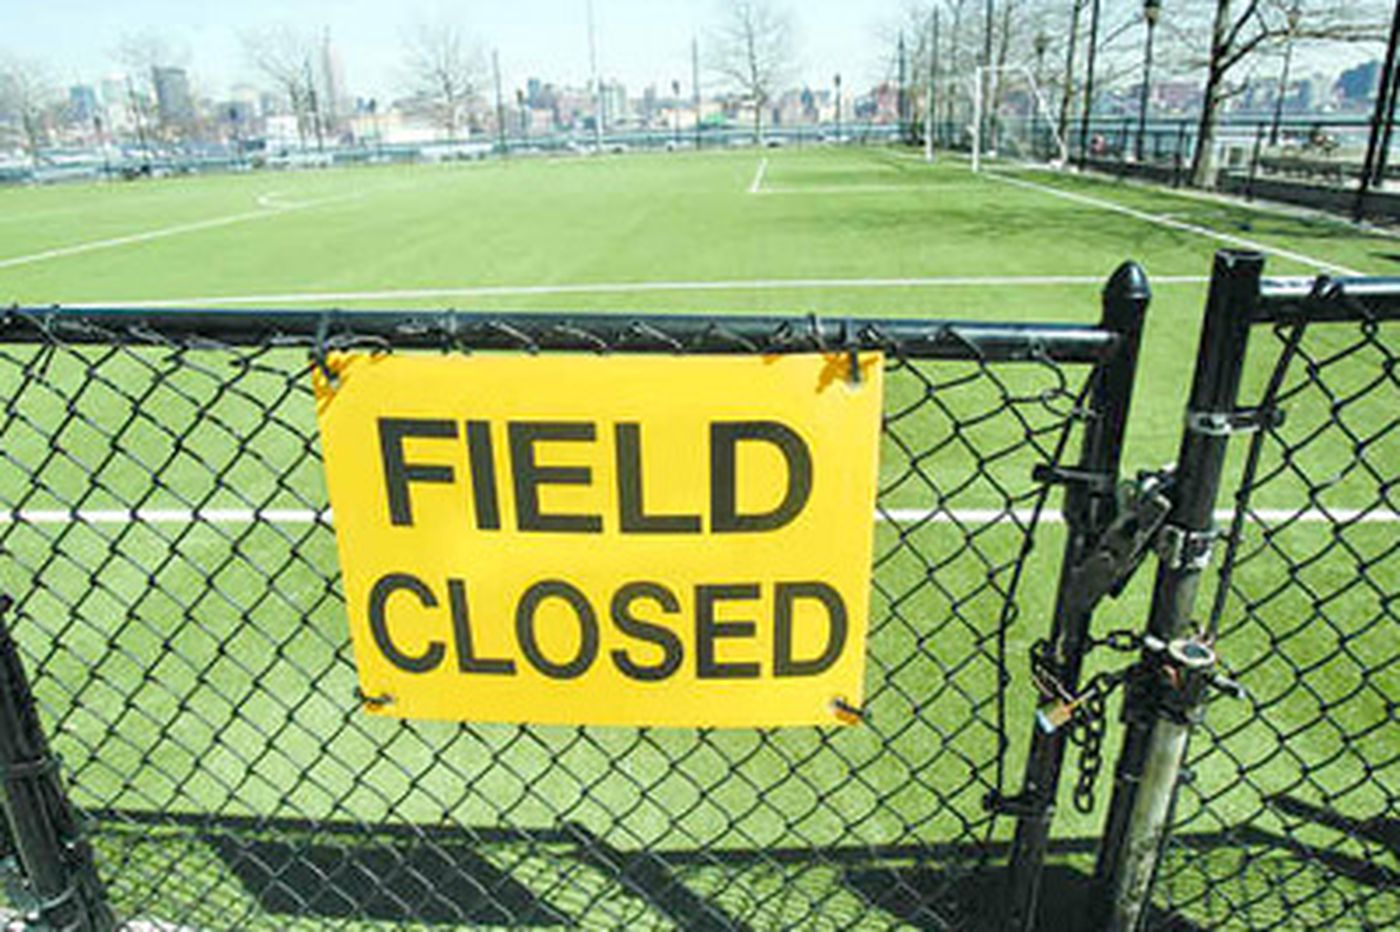 Schools await a U.S. report on artifical turf